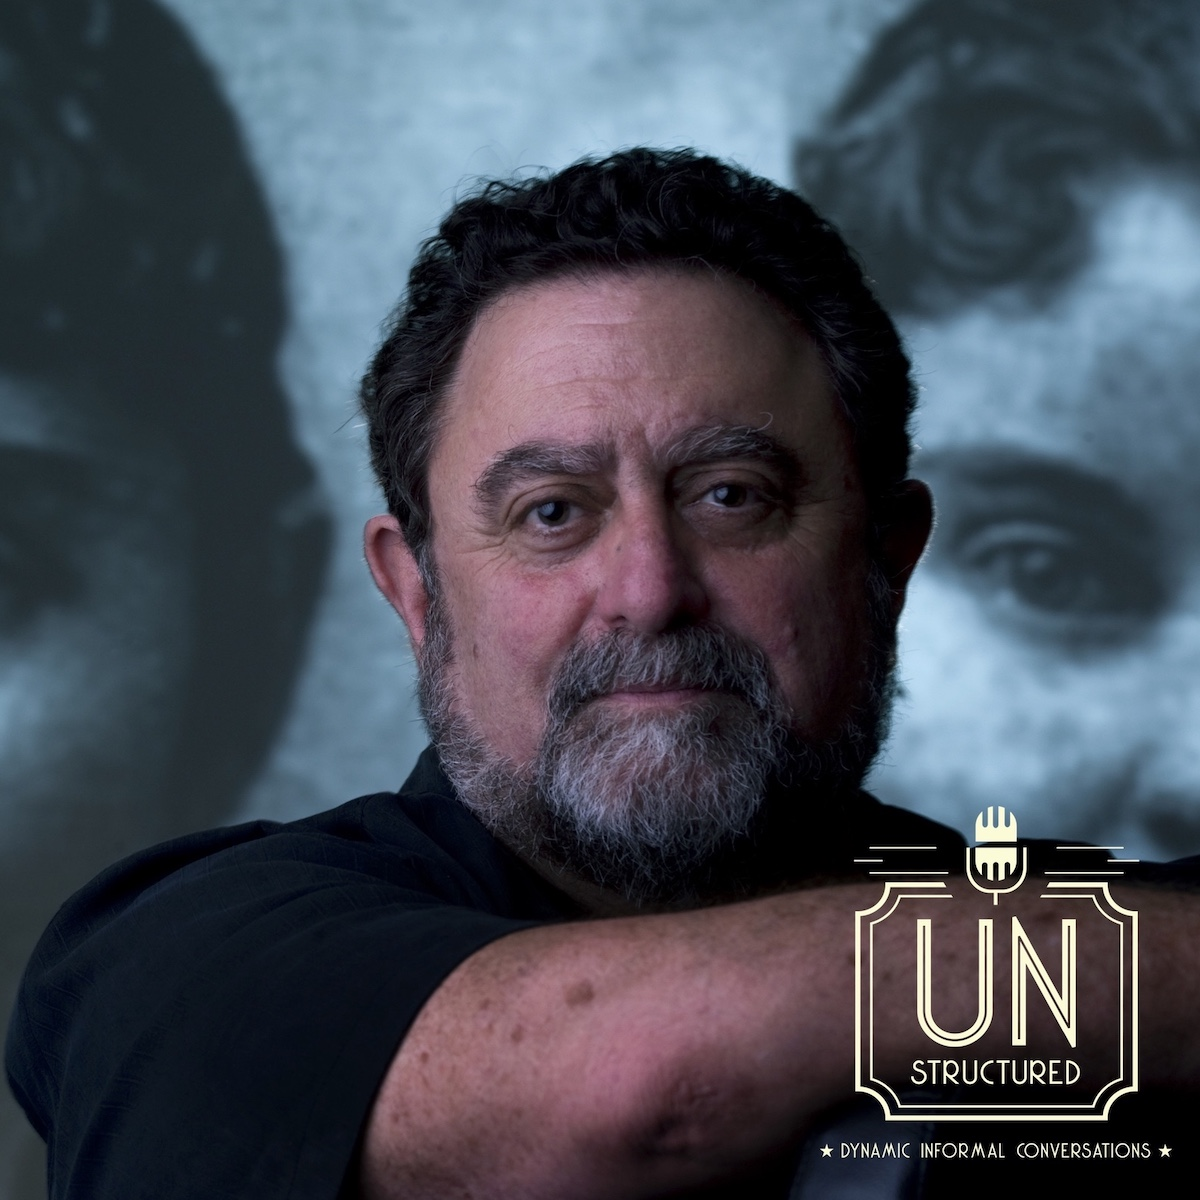 031 - James Fallon UnstructuredPod Unstructured interviews - Dynamic Informal Conversations with unique wide-ranging and well-researched interviews hosted by Eric Hunley